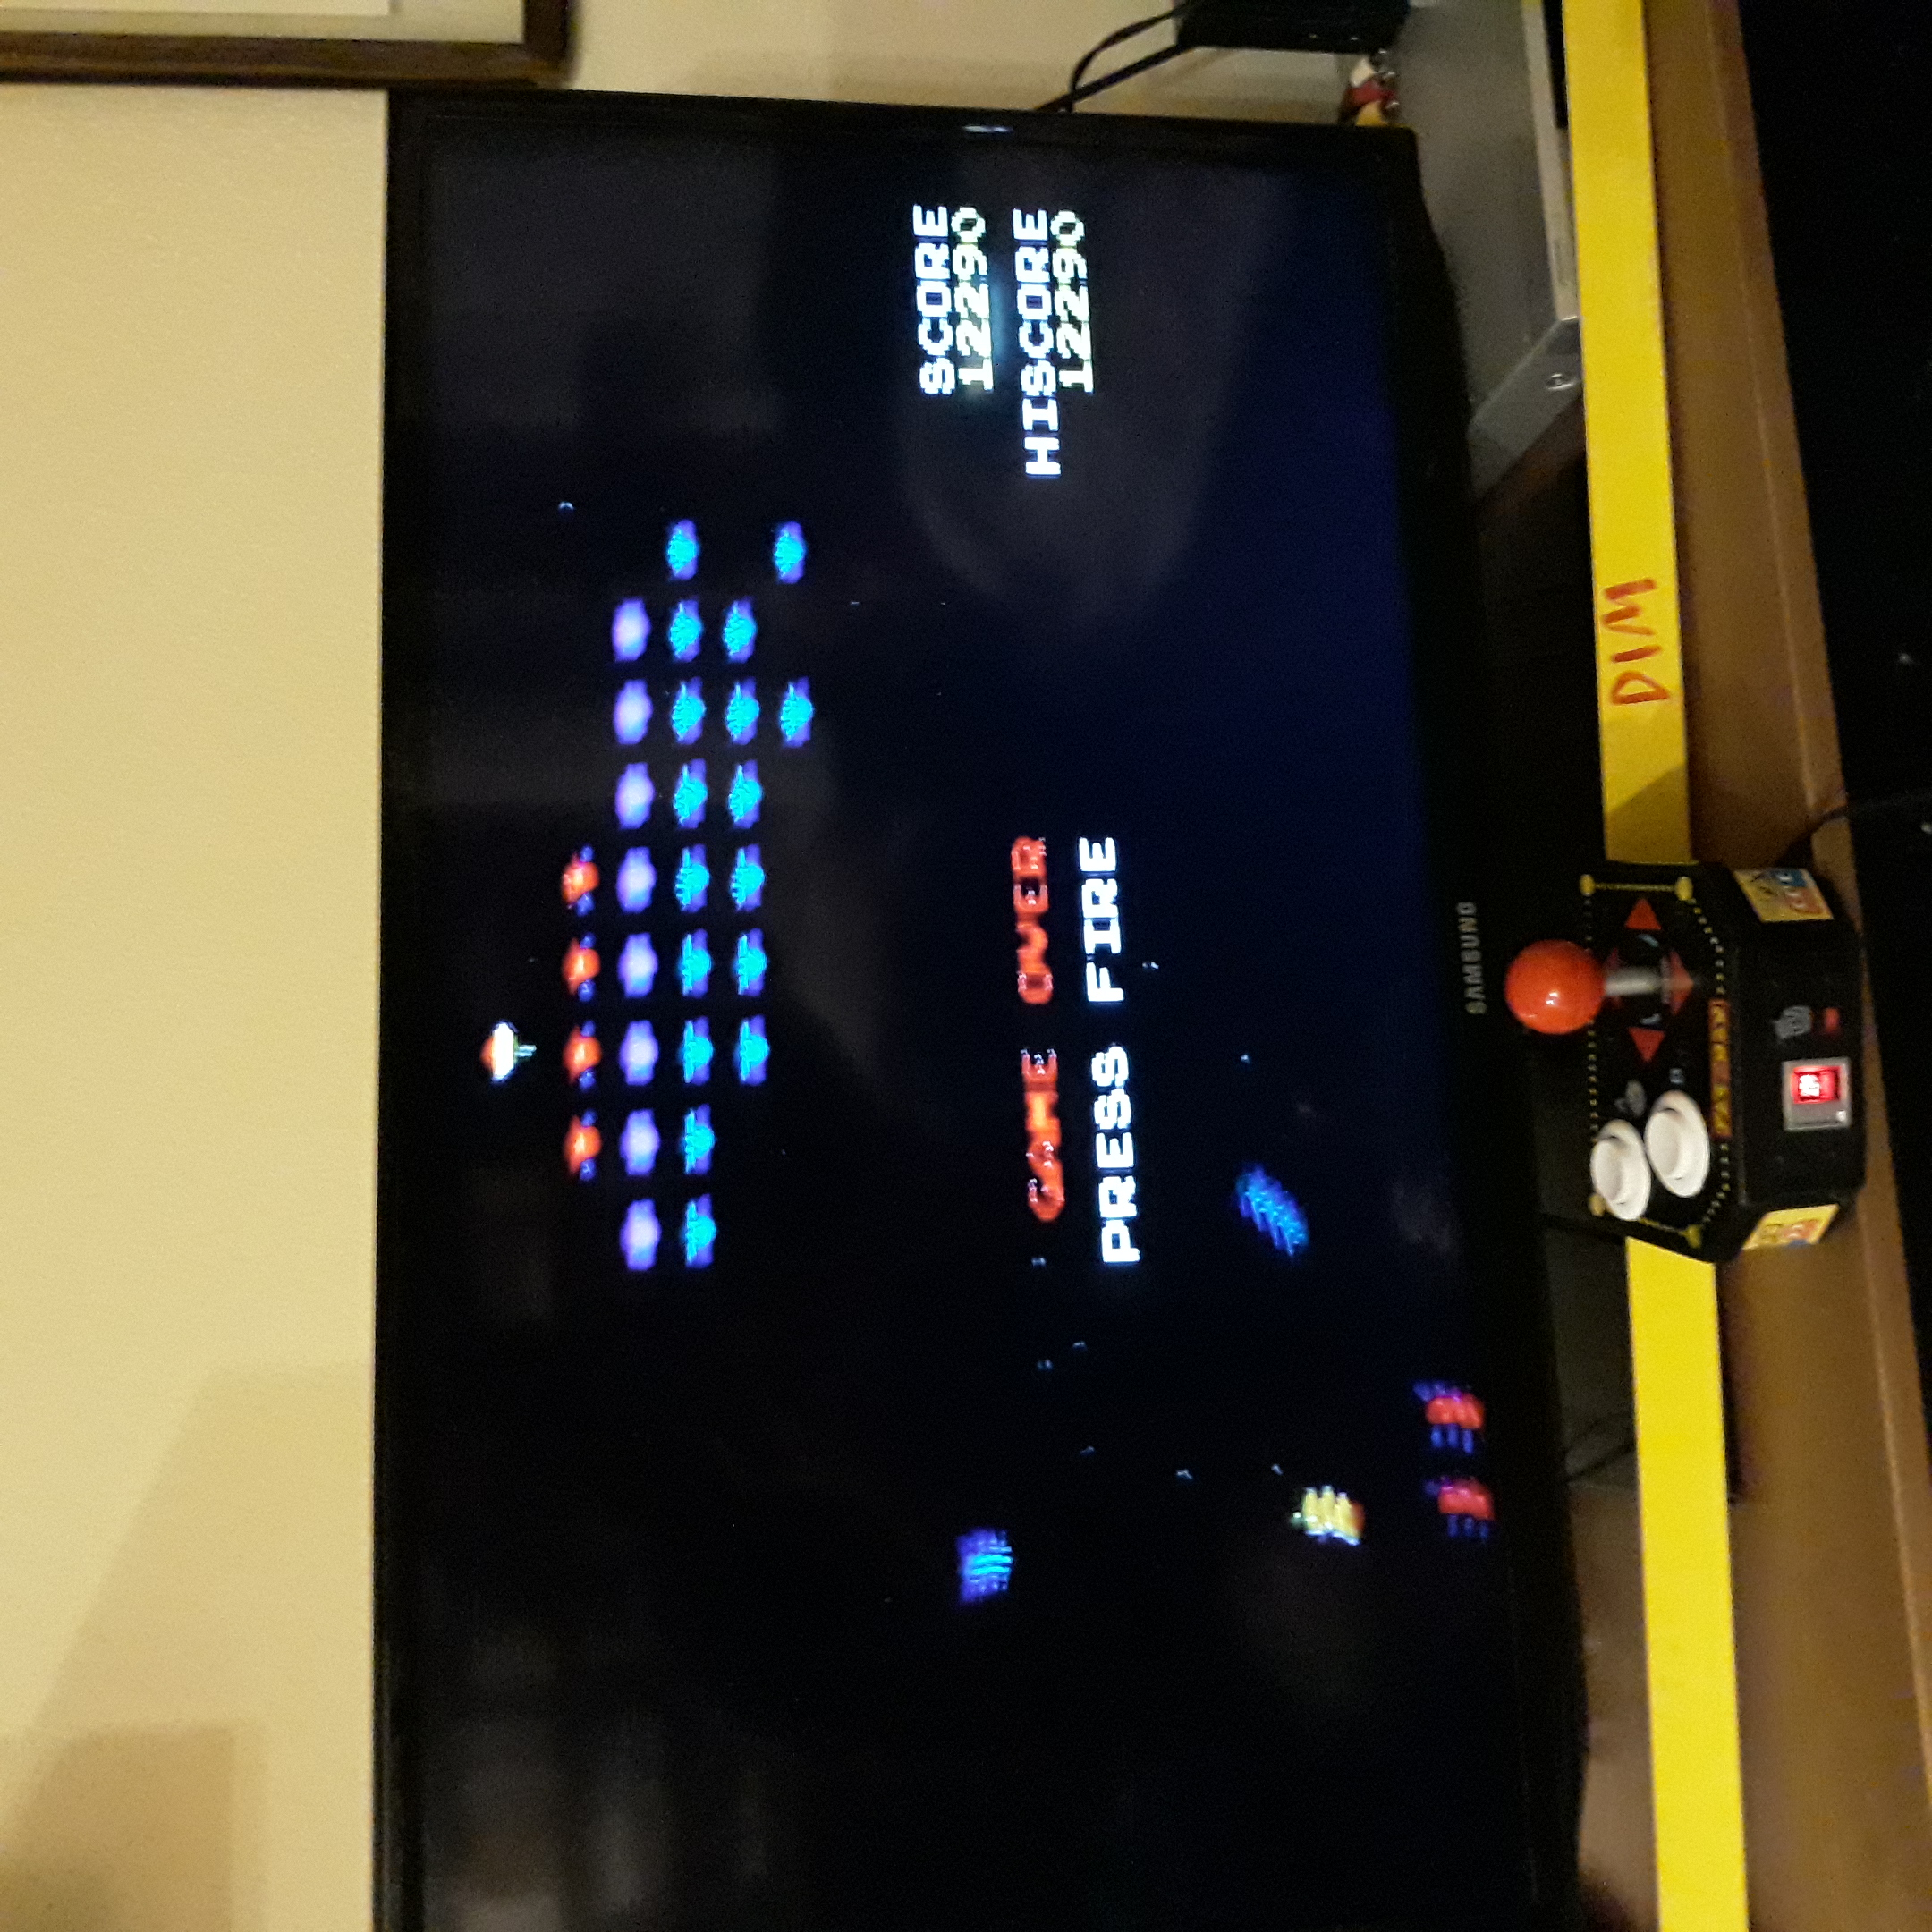 Galaxian 12,290 points